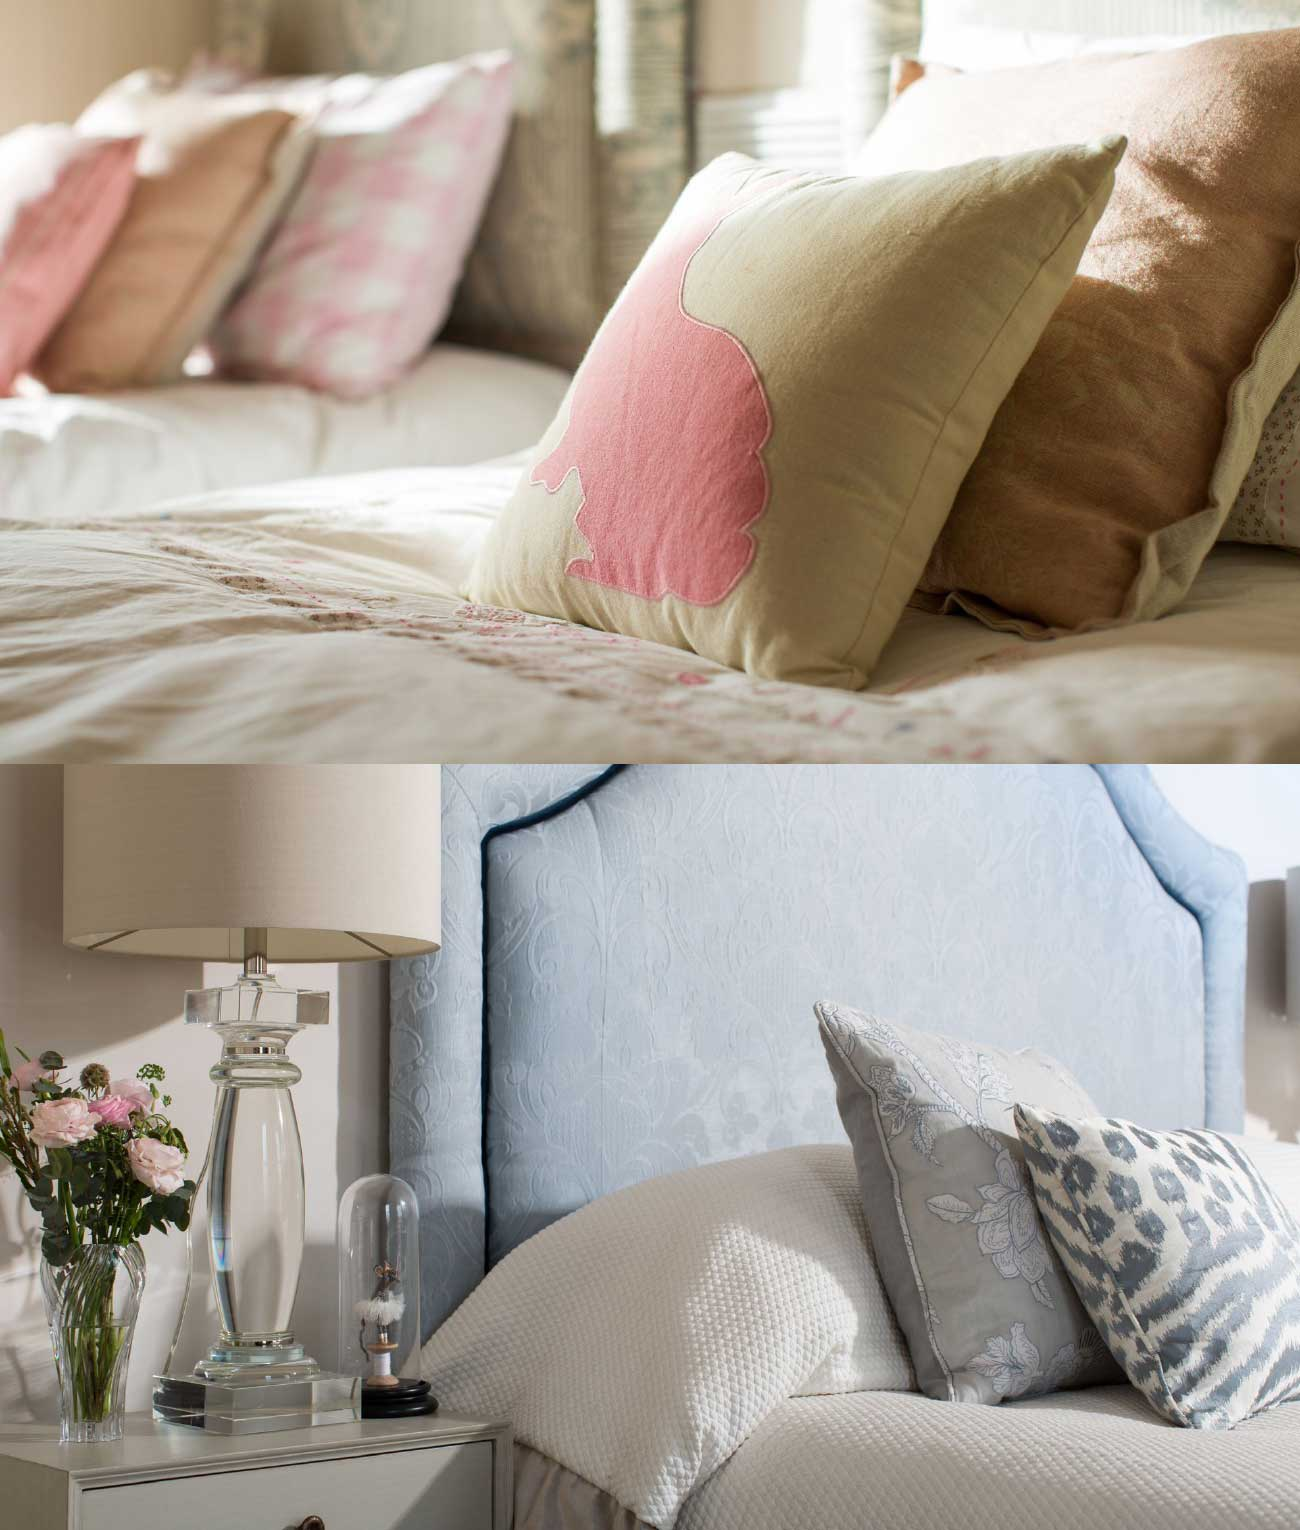 Thompson Clarke Interiors - Townhouse Project Image 7